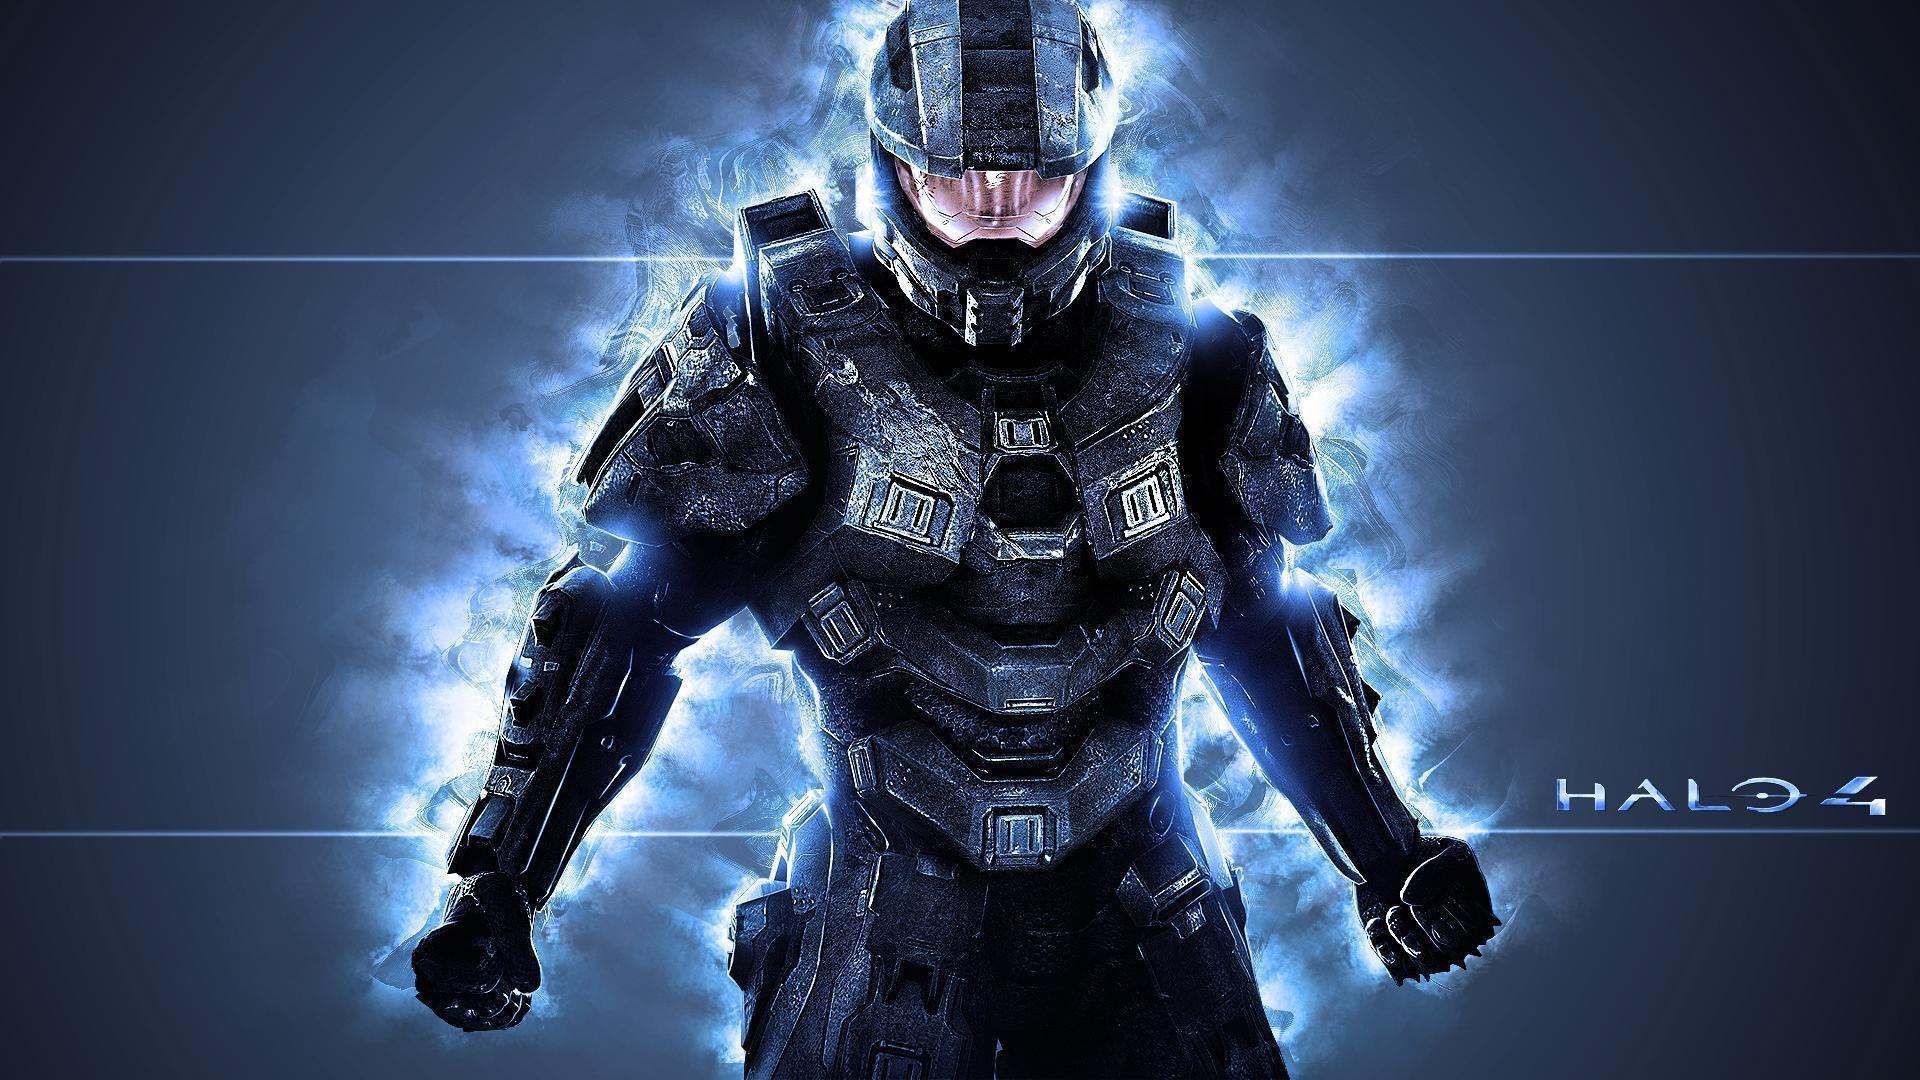 Cool halo wallpapers wallpaper cave - Halo 4 pictures ...